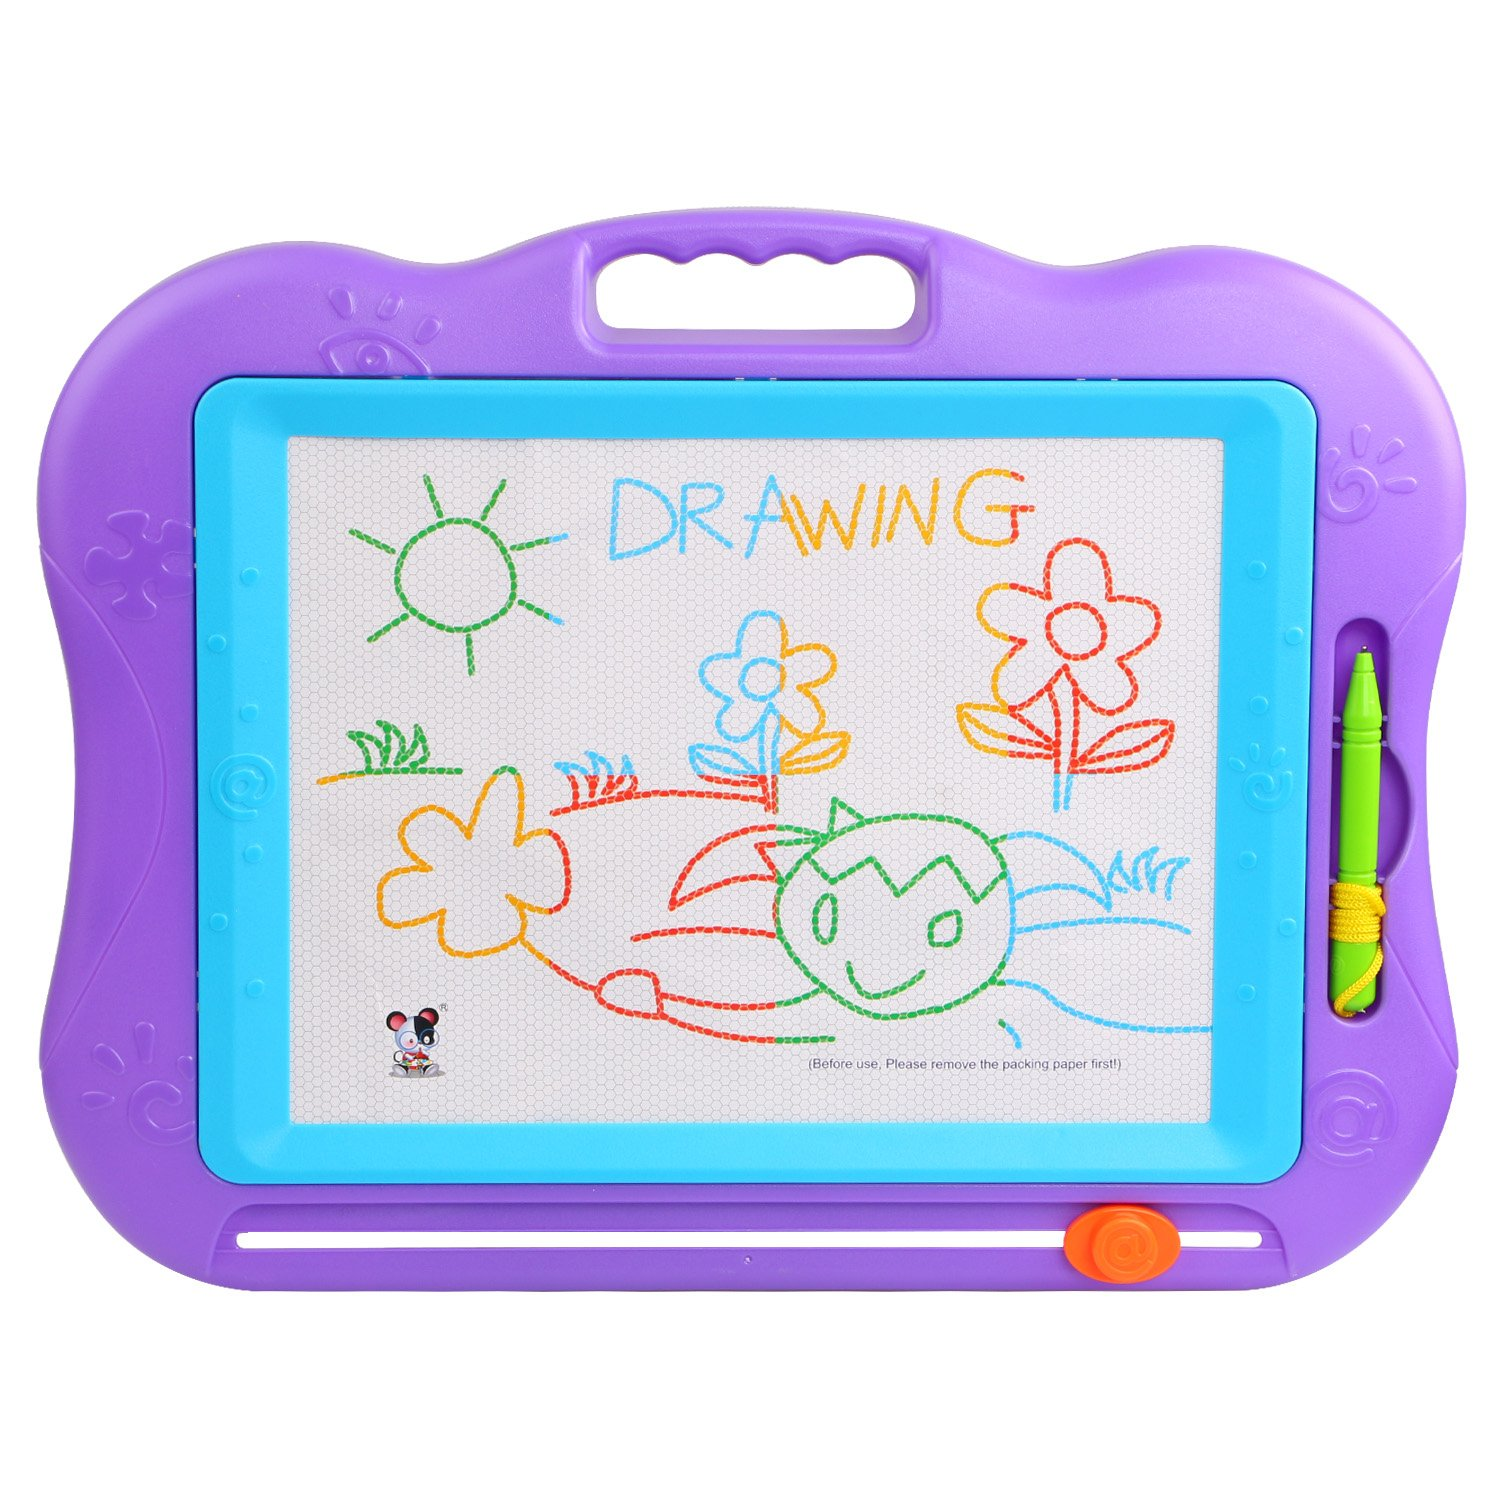 Playtoy Magnetic Colorful Erasable Baby/Kids Early Education Drawing Board Blackboard